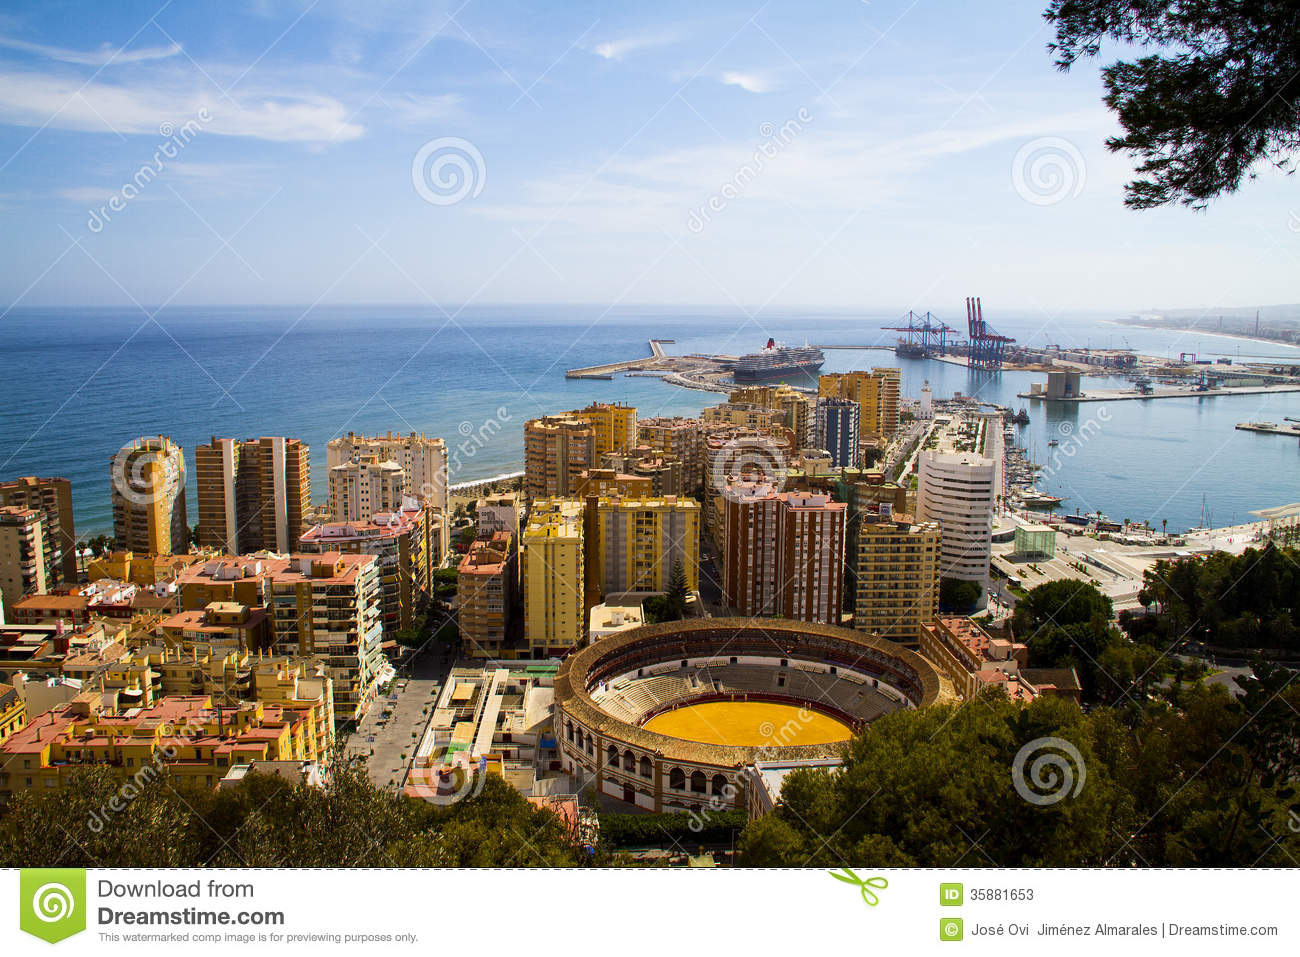 city of malaga stock image image of spain beach portraits 35881653. Black Bedroom Furniture Sets. Home Design Ideas